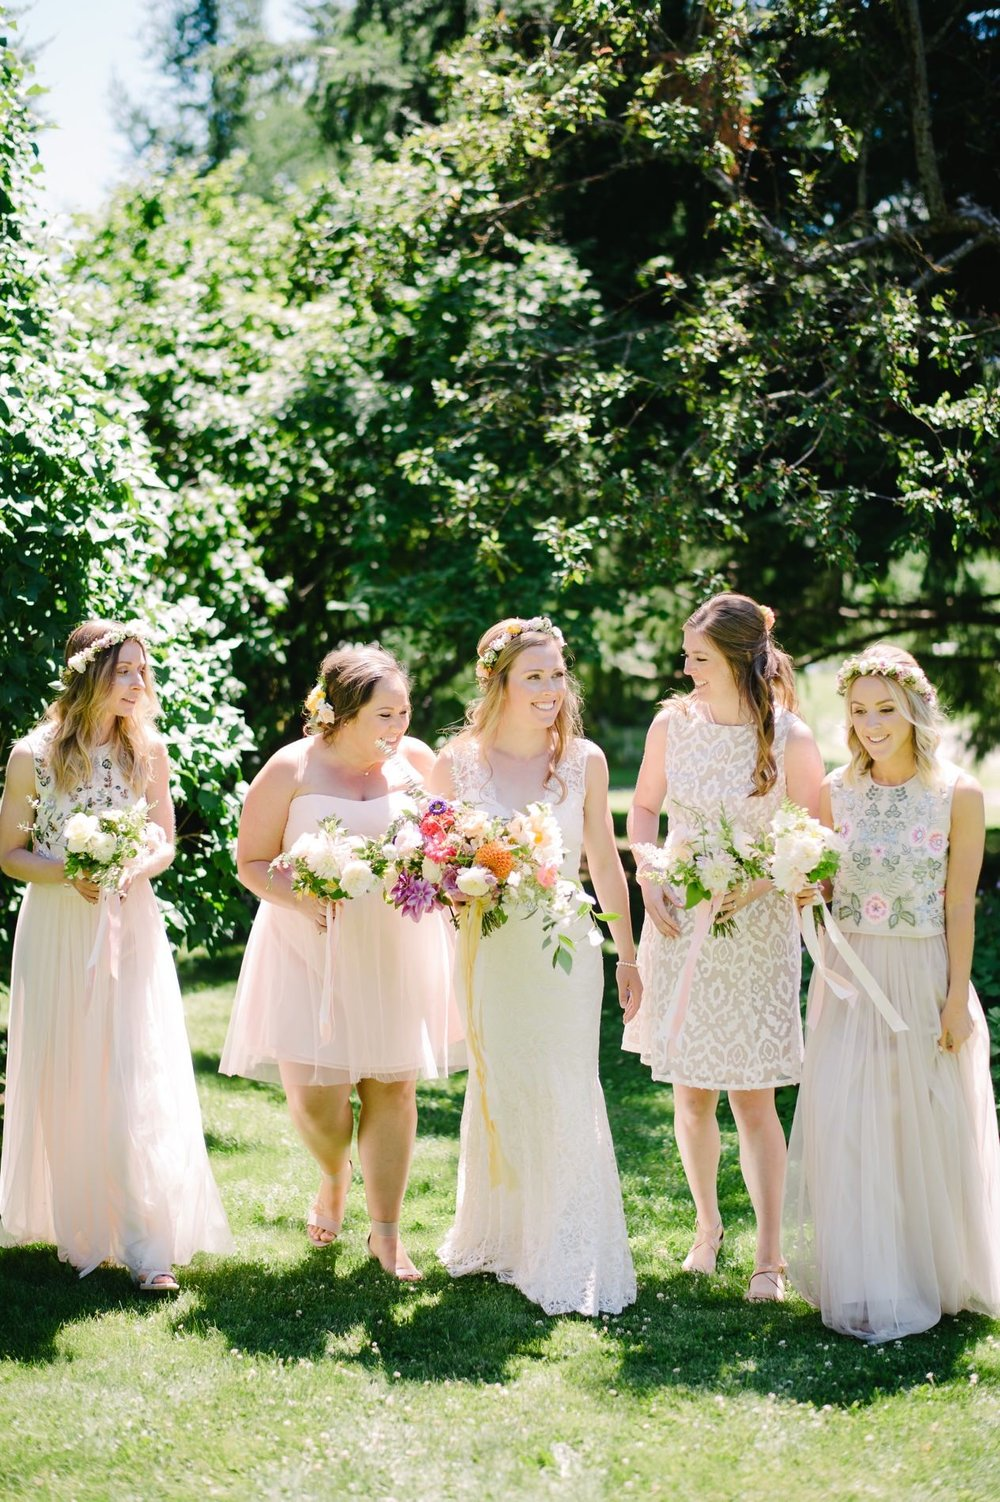 wedding party flowers for outdoor wedding.jpg